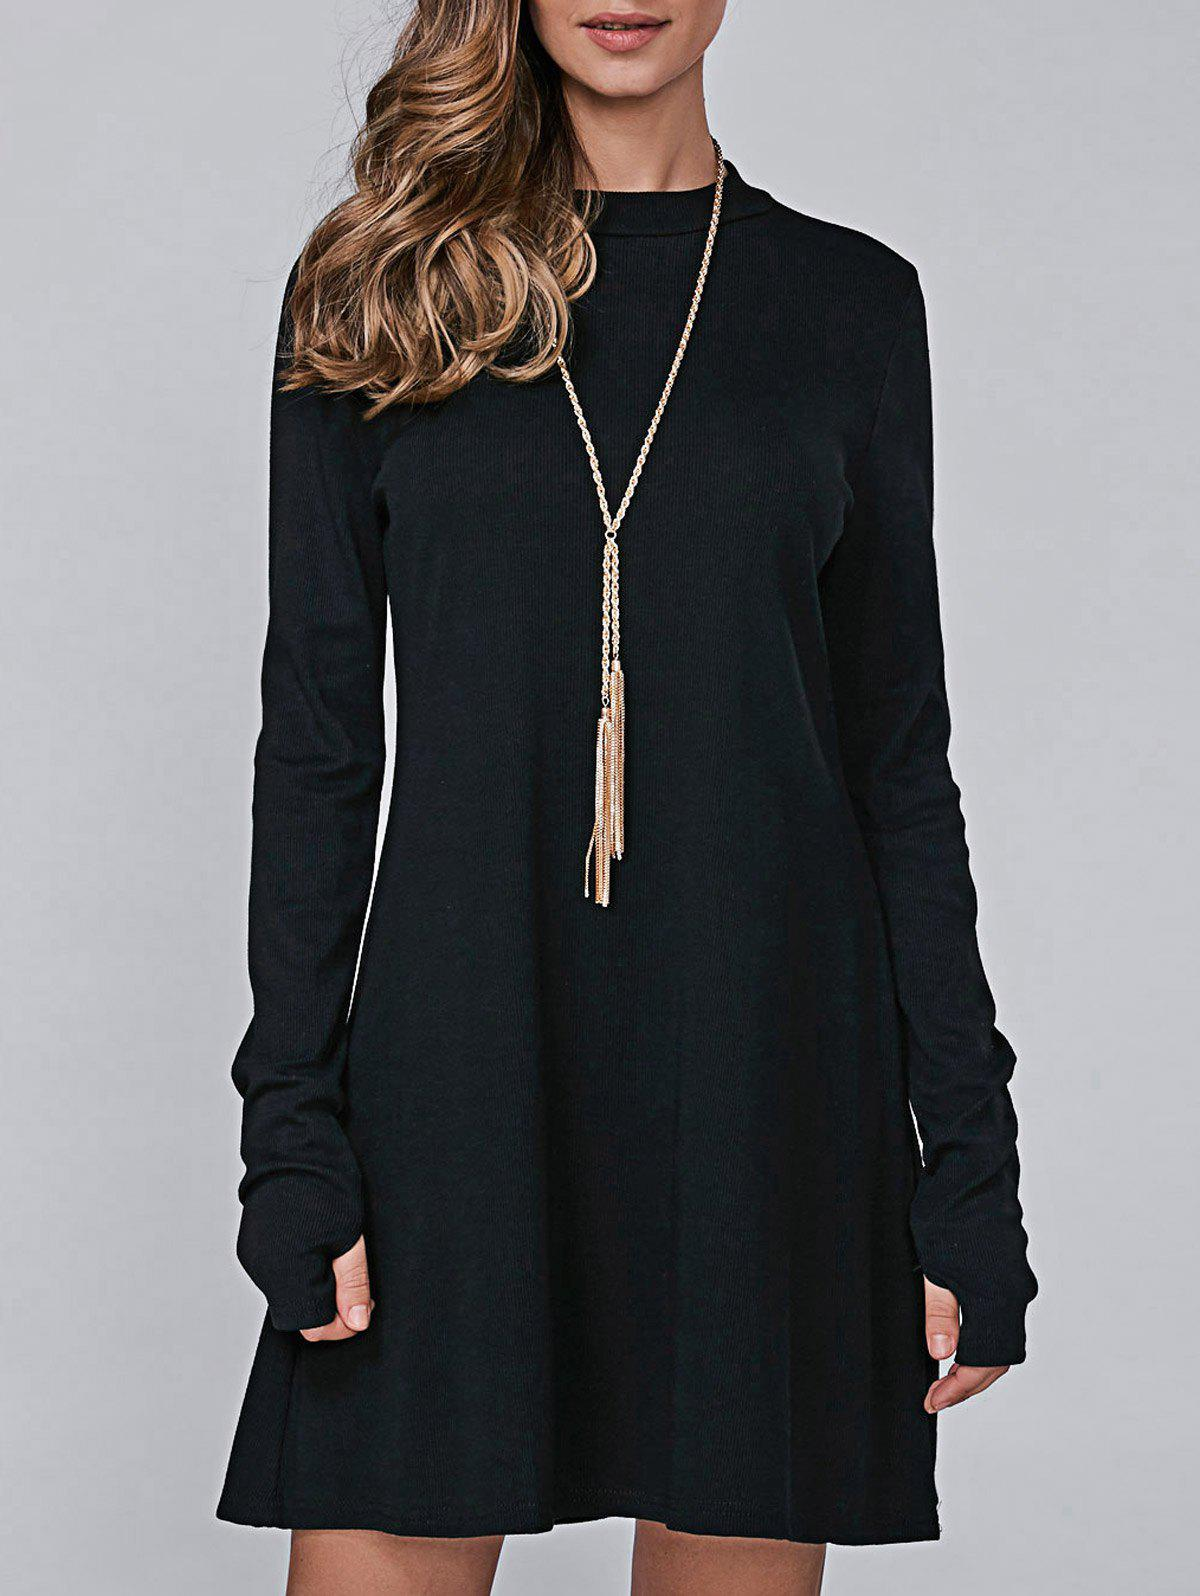 High Neck Long Sleeve Casual Jumper DressWOMEN<br><br>Size: L; Color: BLACK; Style: Casual; Material: Polyester; Silhouette: A-Line; Dresses Length: Mini; Neckline: High Neck; Sleeve Length: Long Sleeves; Pattern Type: Solid; With Belt: No; Season: Fall; Weight: 0.300kg; Package Contents: 1 x Dress;